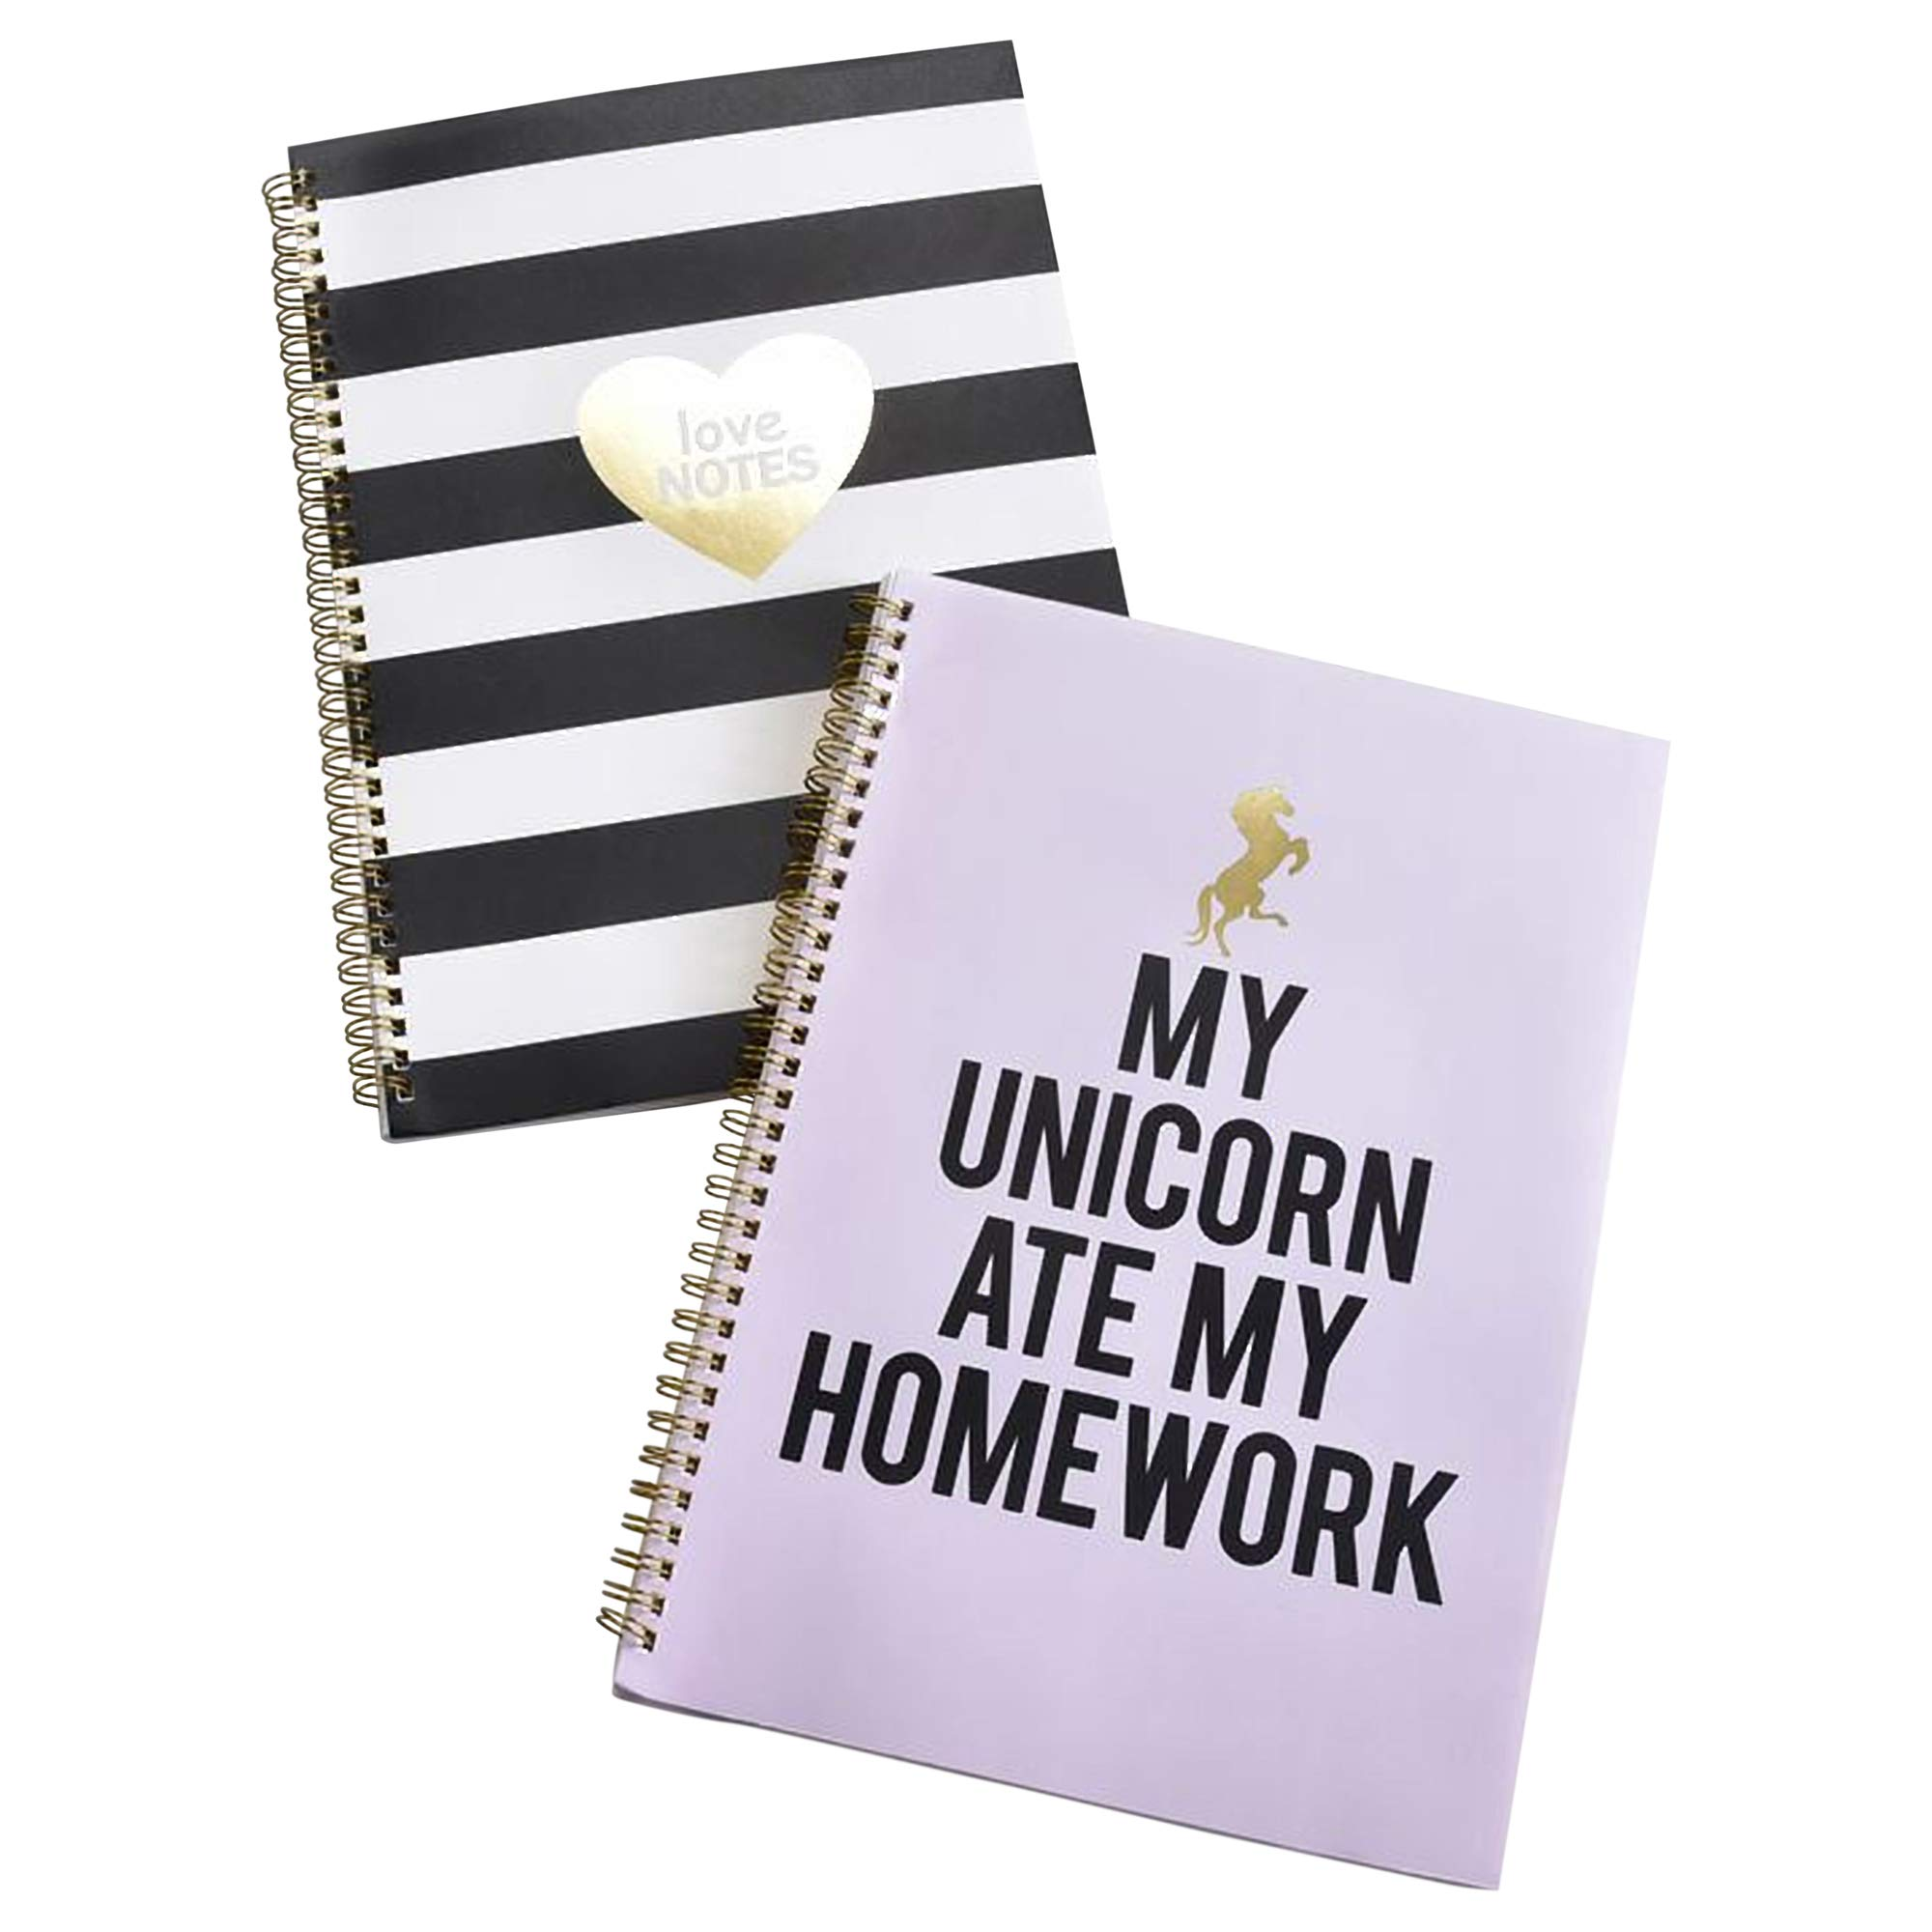 Unicorn Ate Homework 9 x 12 inch Wide Rule Spiral Bound Notebooks Assorted Set of 2